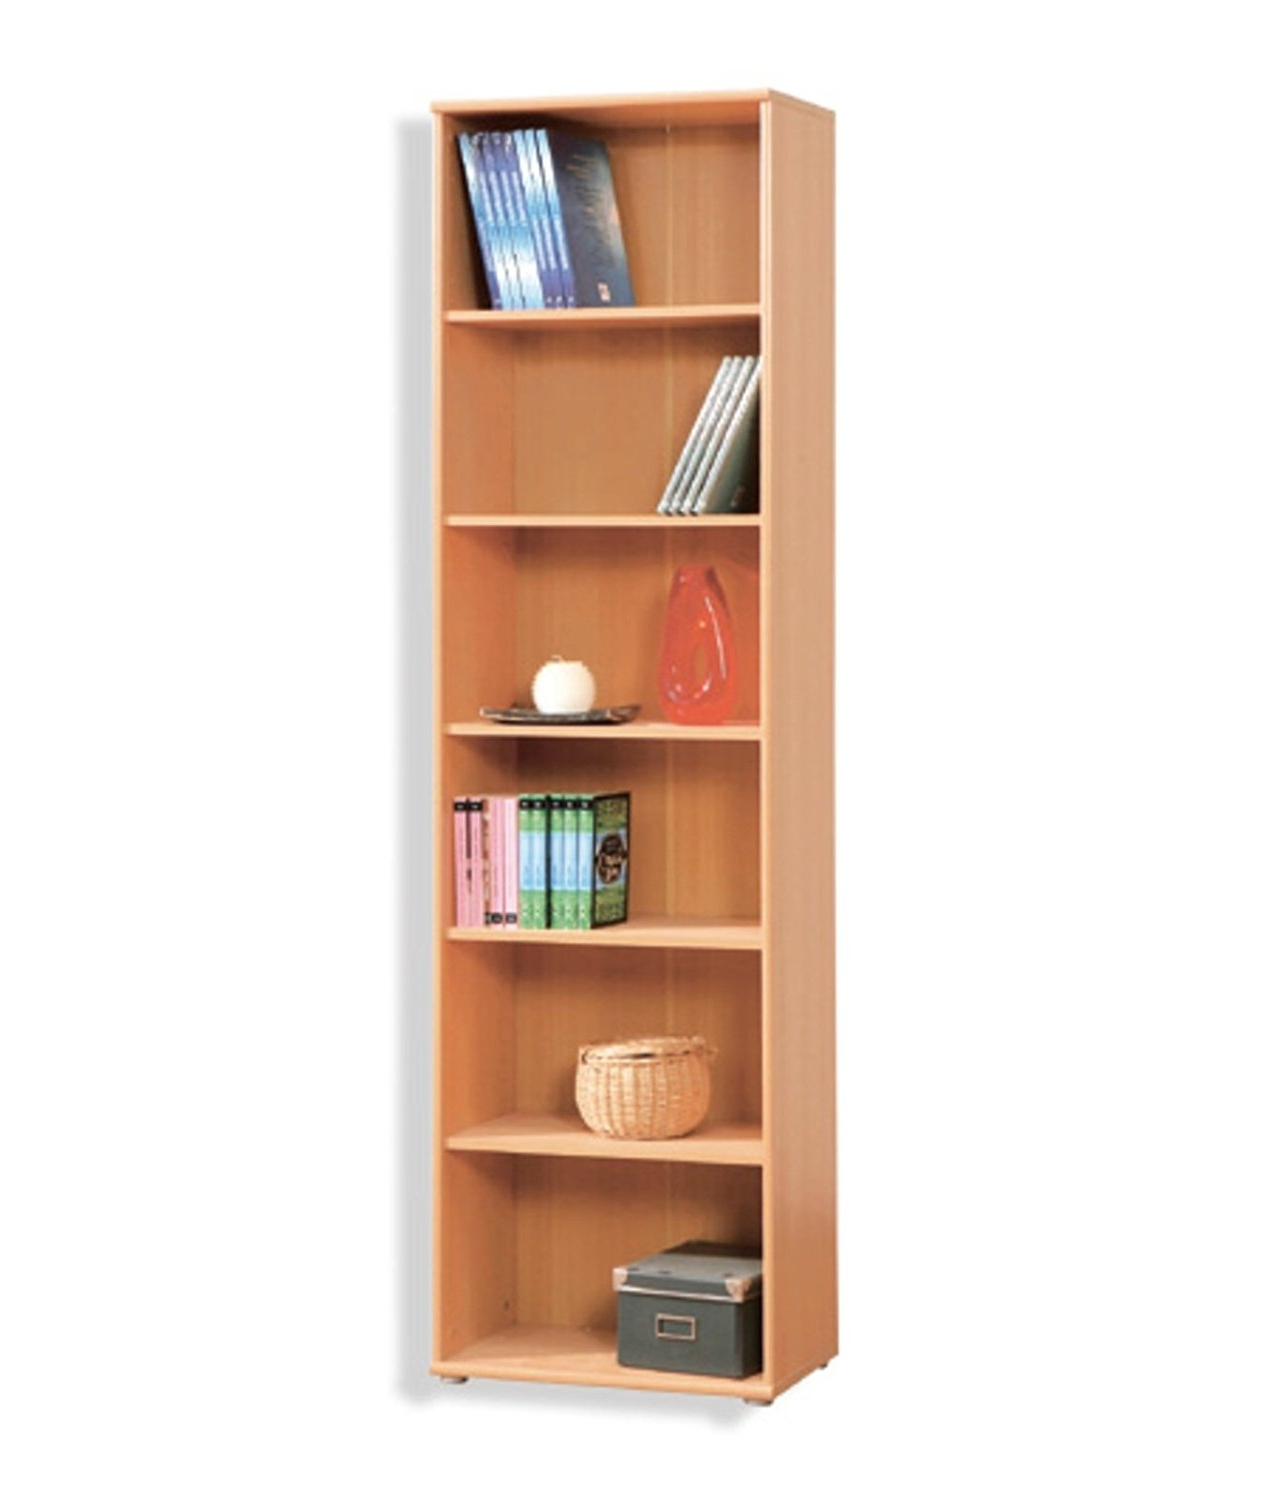 Beech Bookcases With Regard To Latest Tempra Tall Narrow Beech Bookcase Bookshelf Home Office Furniture (View 2 of 15)